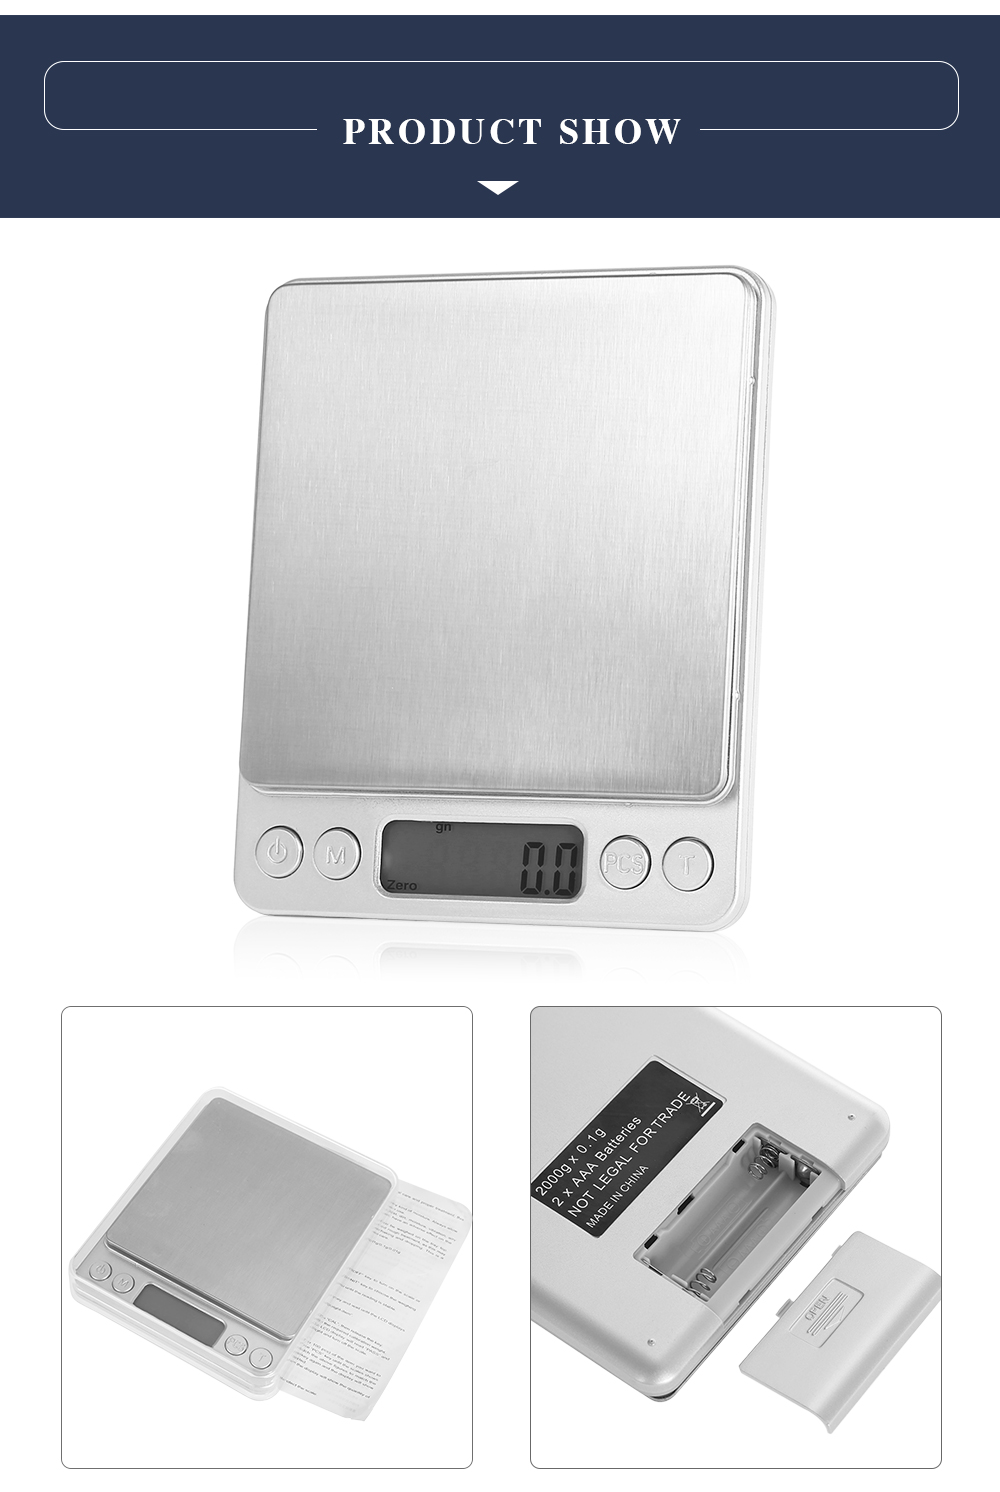 M - 8008 Portable Precise 2000g 1.7 inch LCD Screen Digital Scale